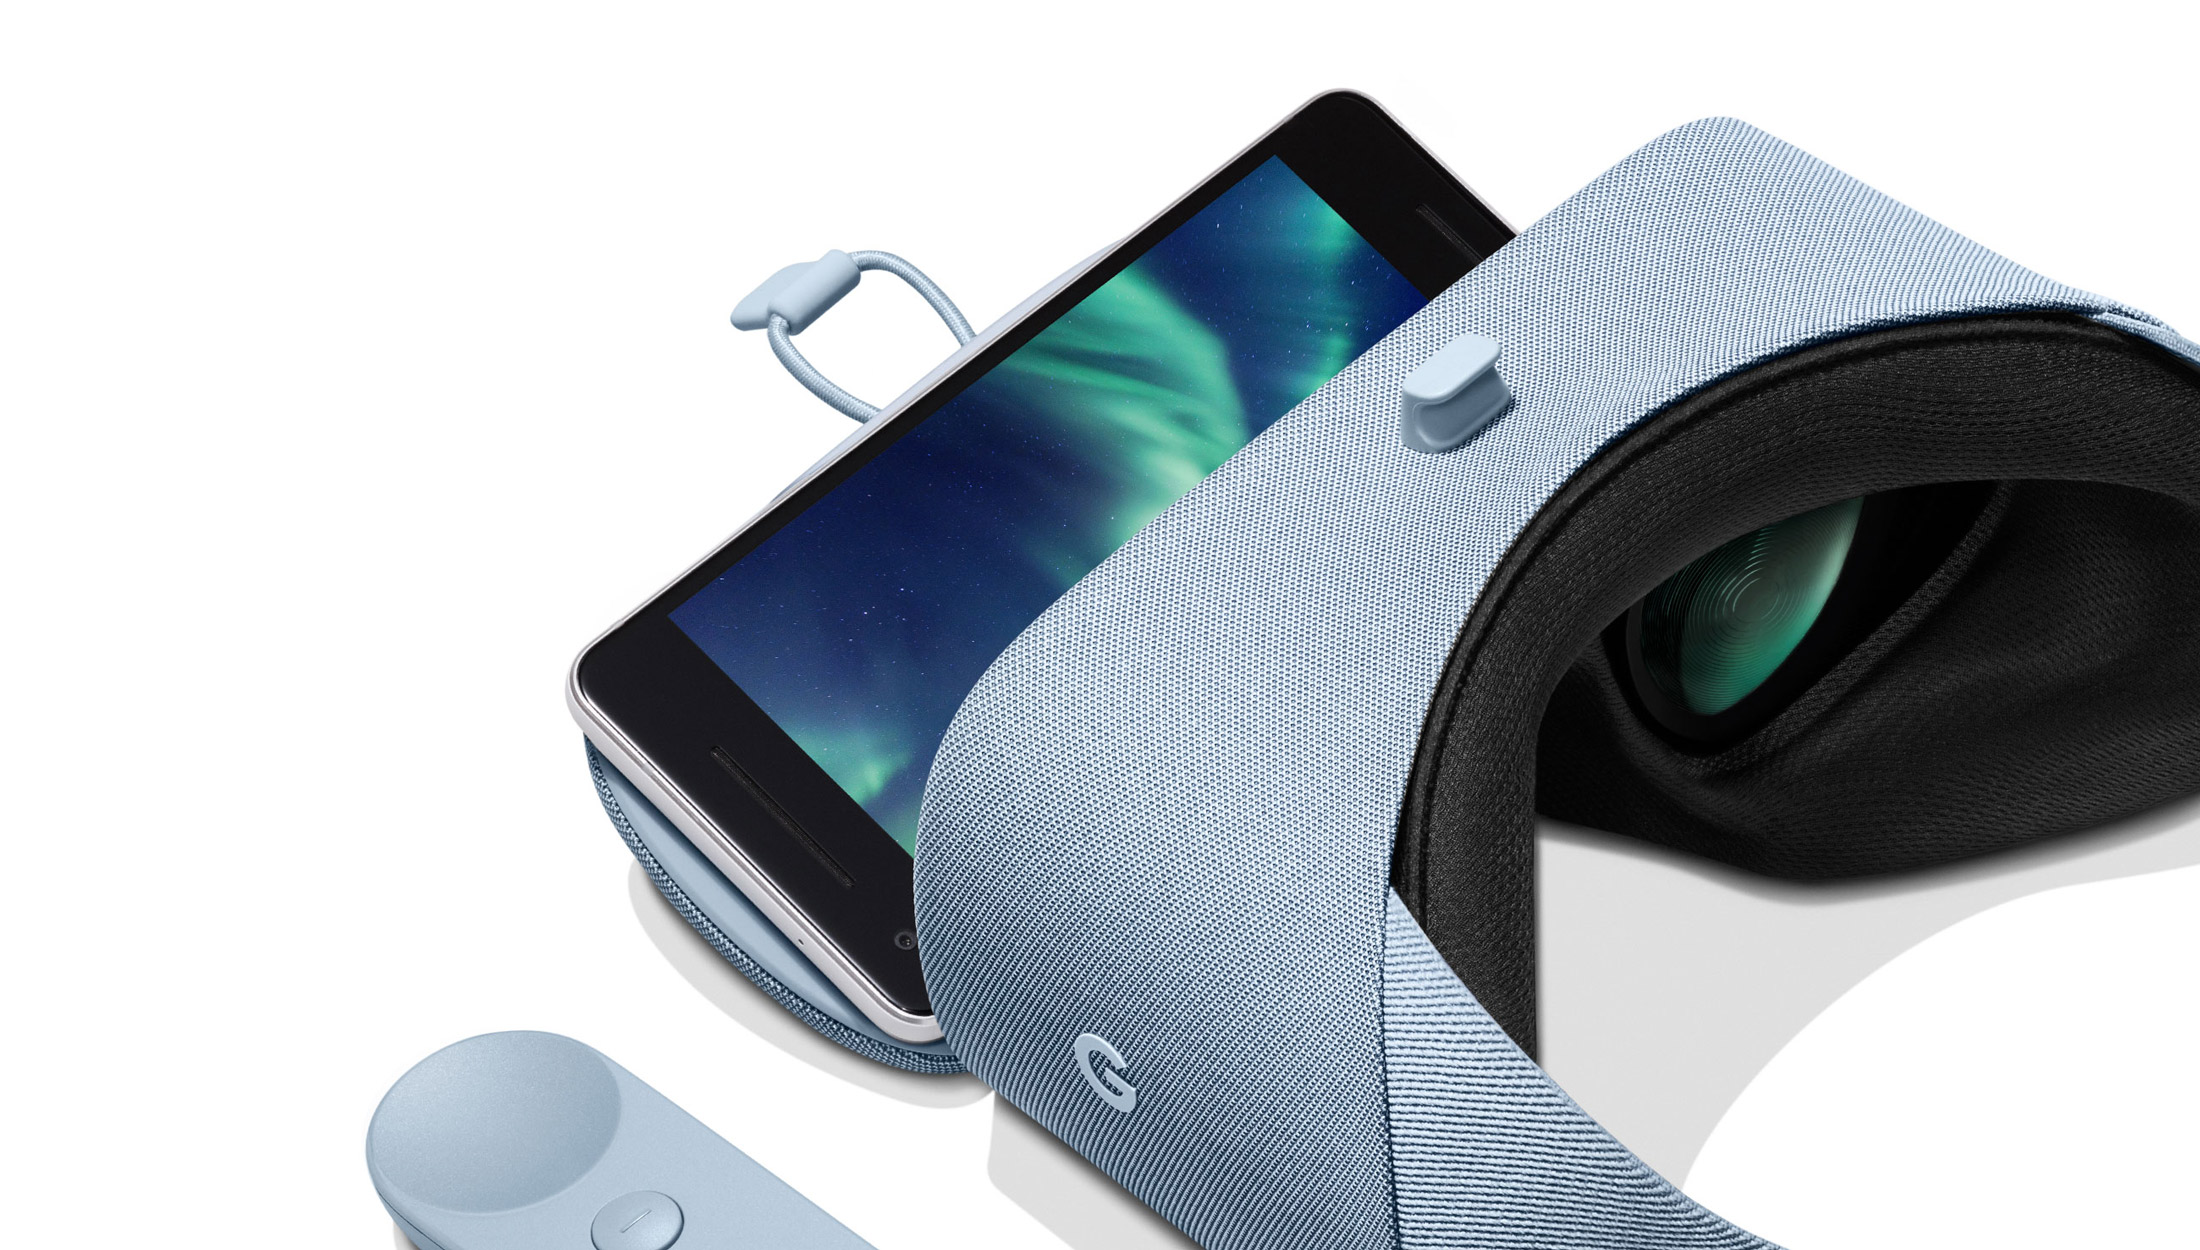 Discover new worlds with Daydream View